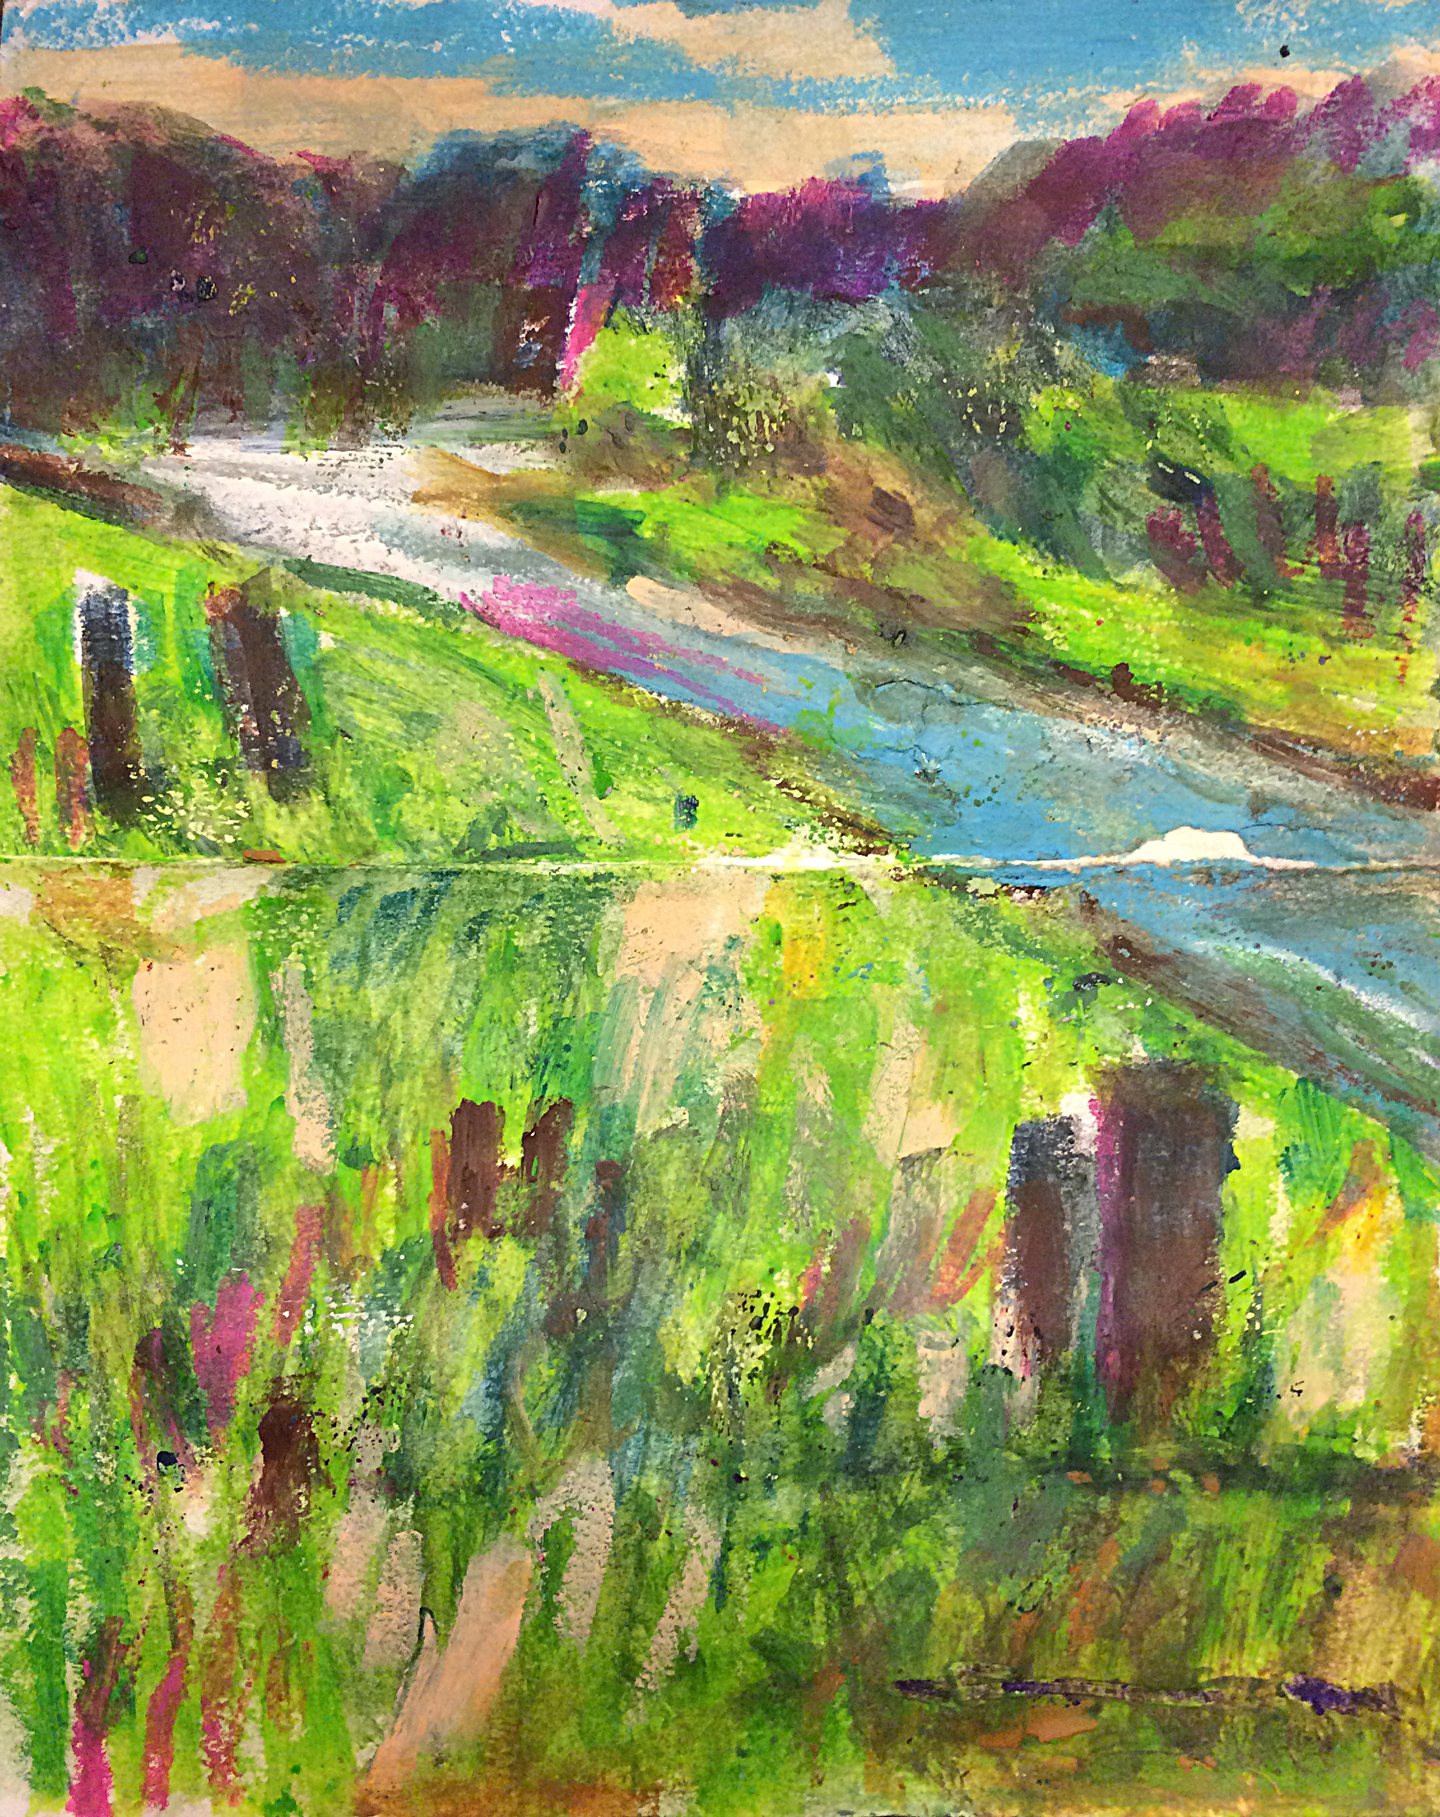 Sketchbook: Color Study at Shelby Farms